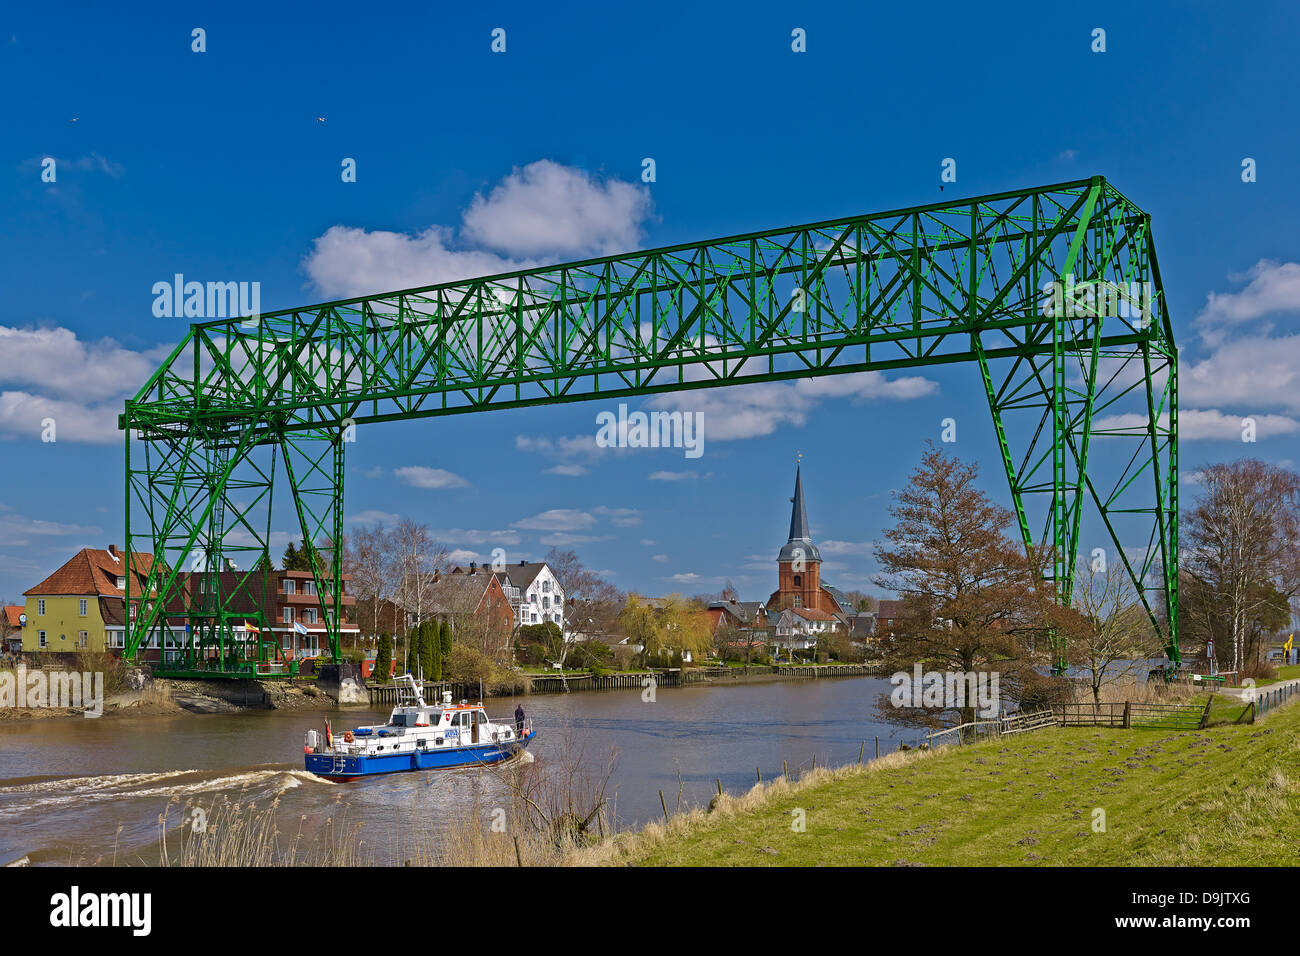 Transporter Bridge Hemmoor-Osten with St. Peters Church, Lower Saxony, Germany - Stock Image